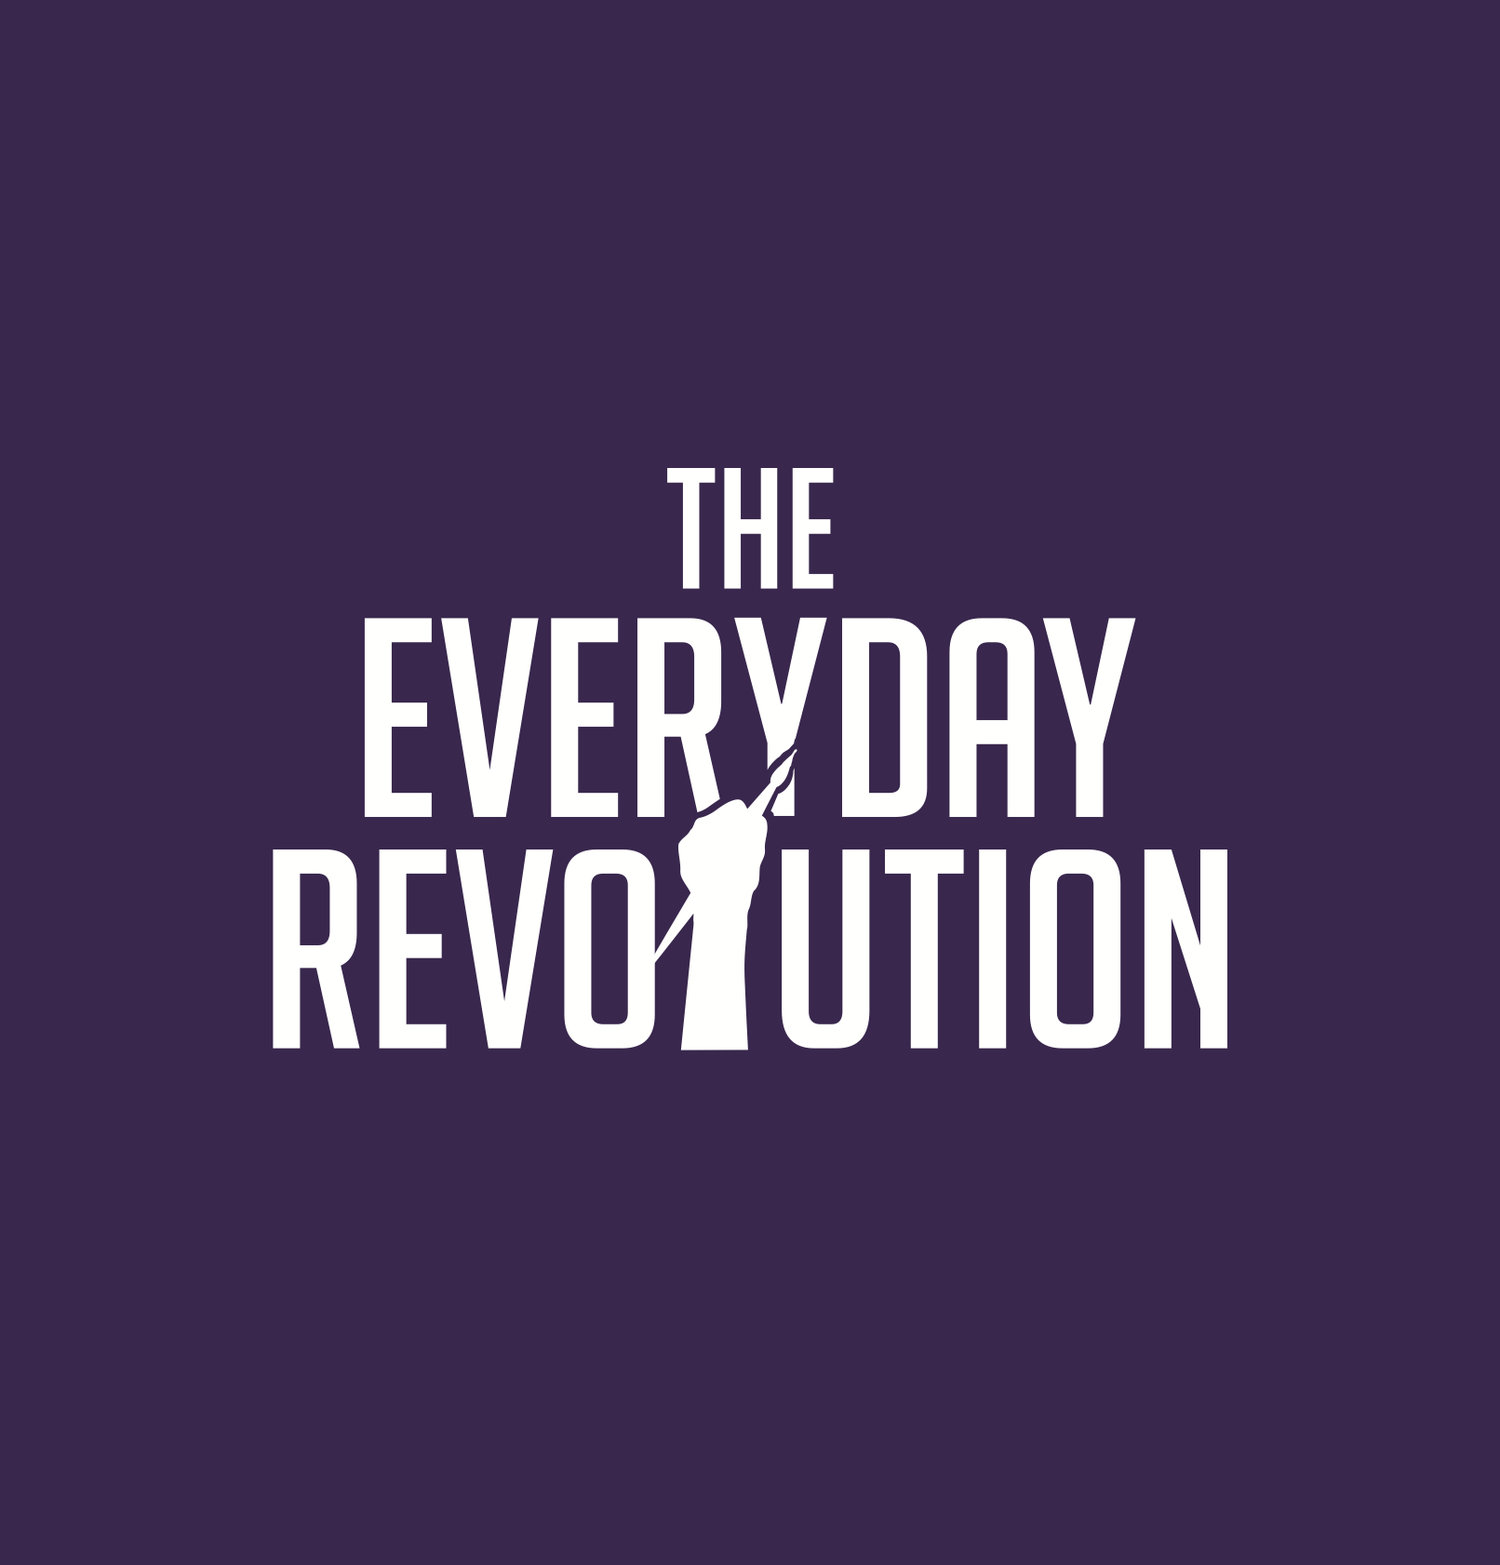 The Everyday Revolution